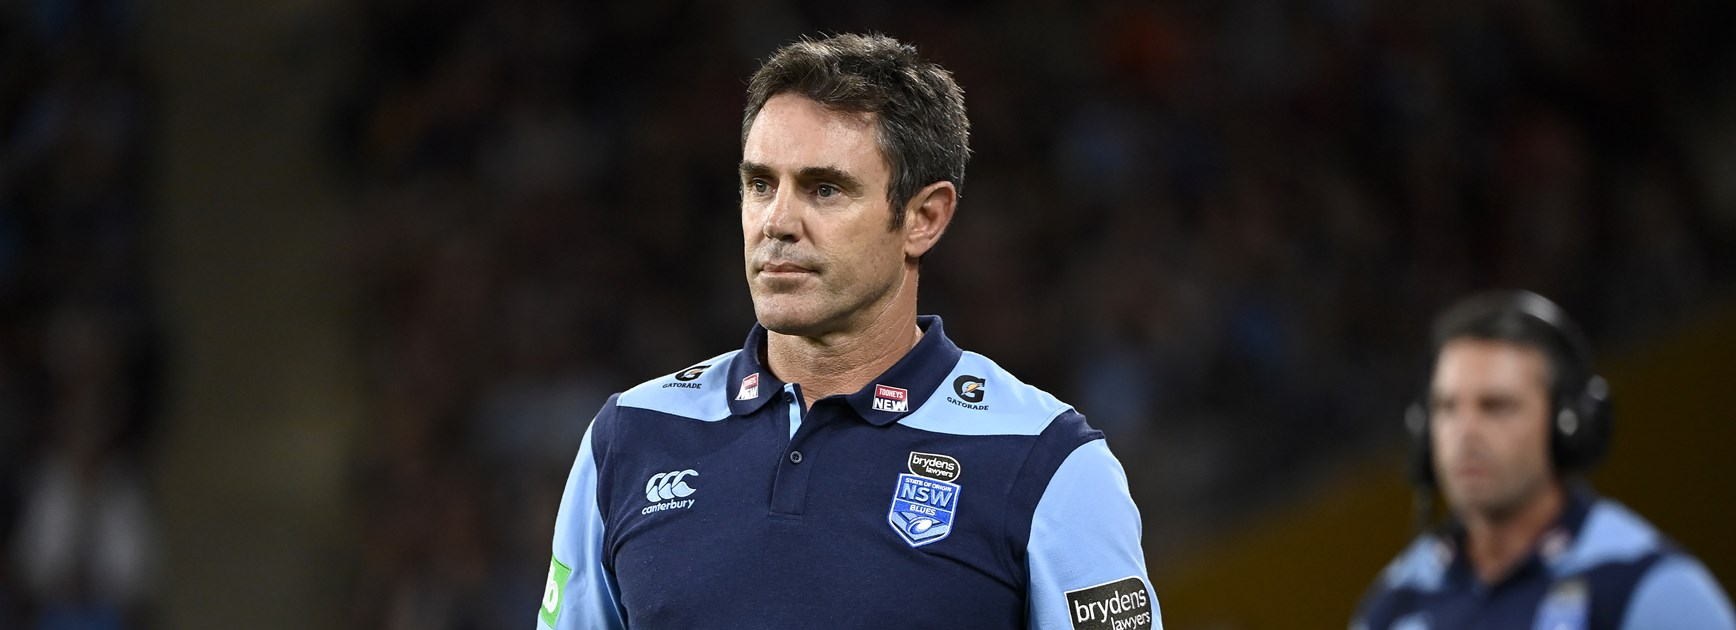 Fittler hints at sticking solid but new rules may change thinking